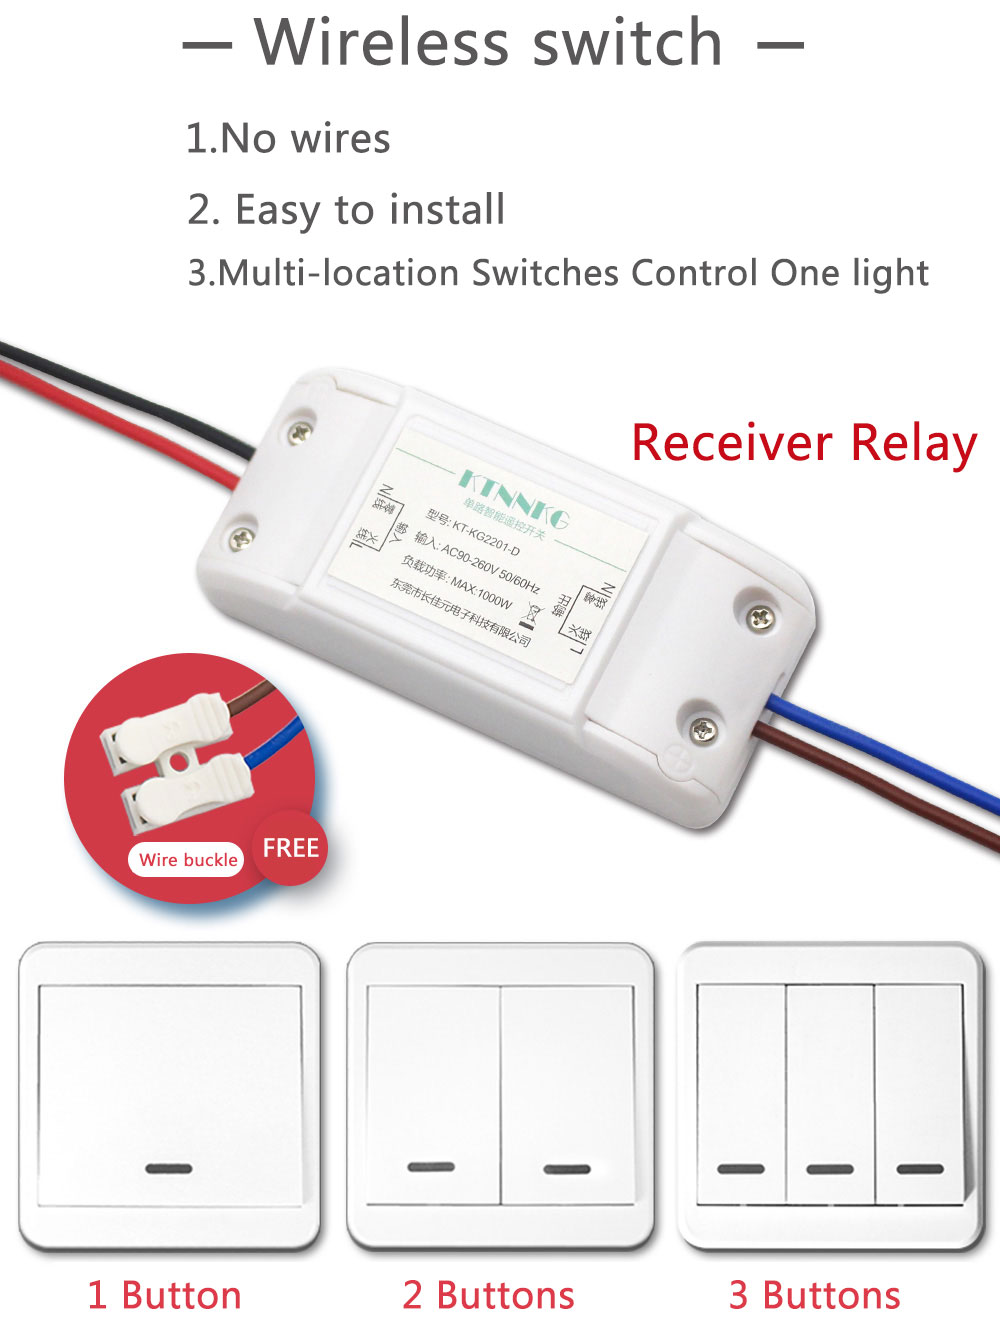 Hannspree Fernbedienung Wireless Light Switch Kit Keine Verdrahtung Macau Electrical Wiring Code Dk1000 02 03